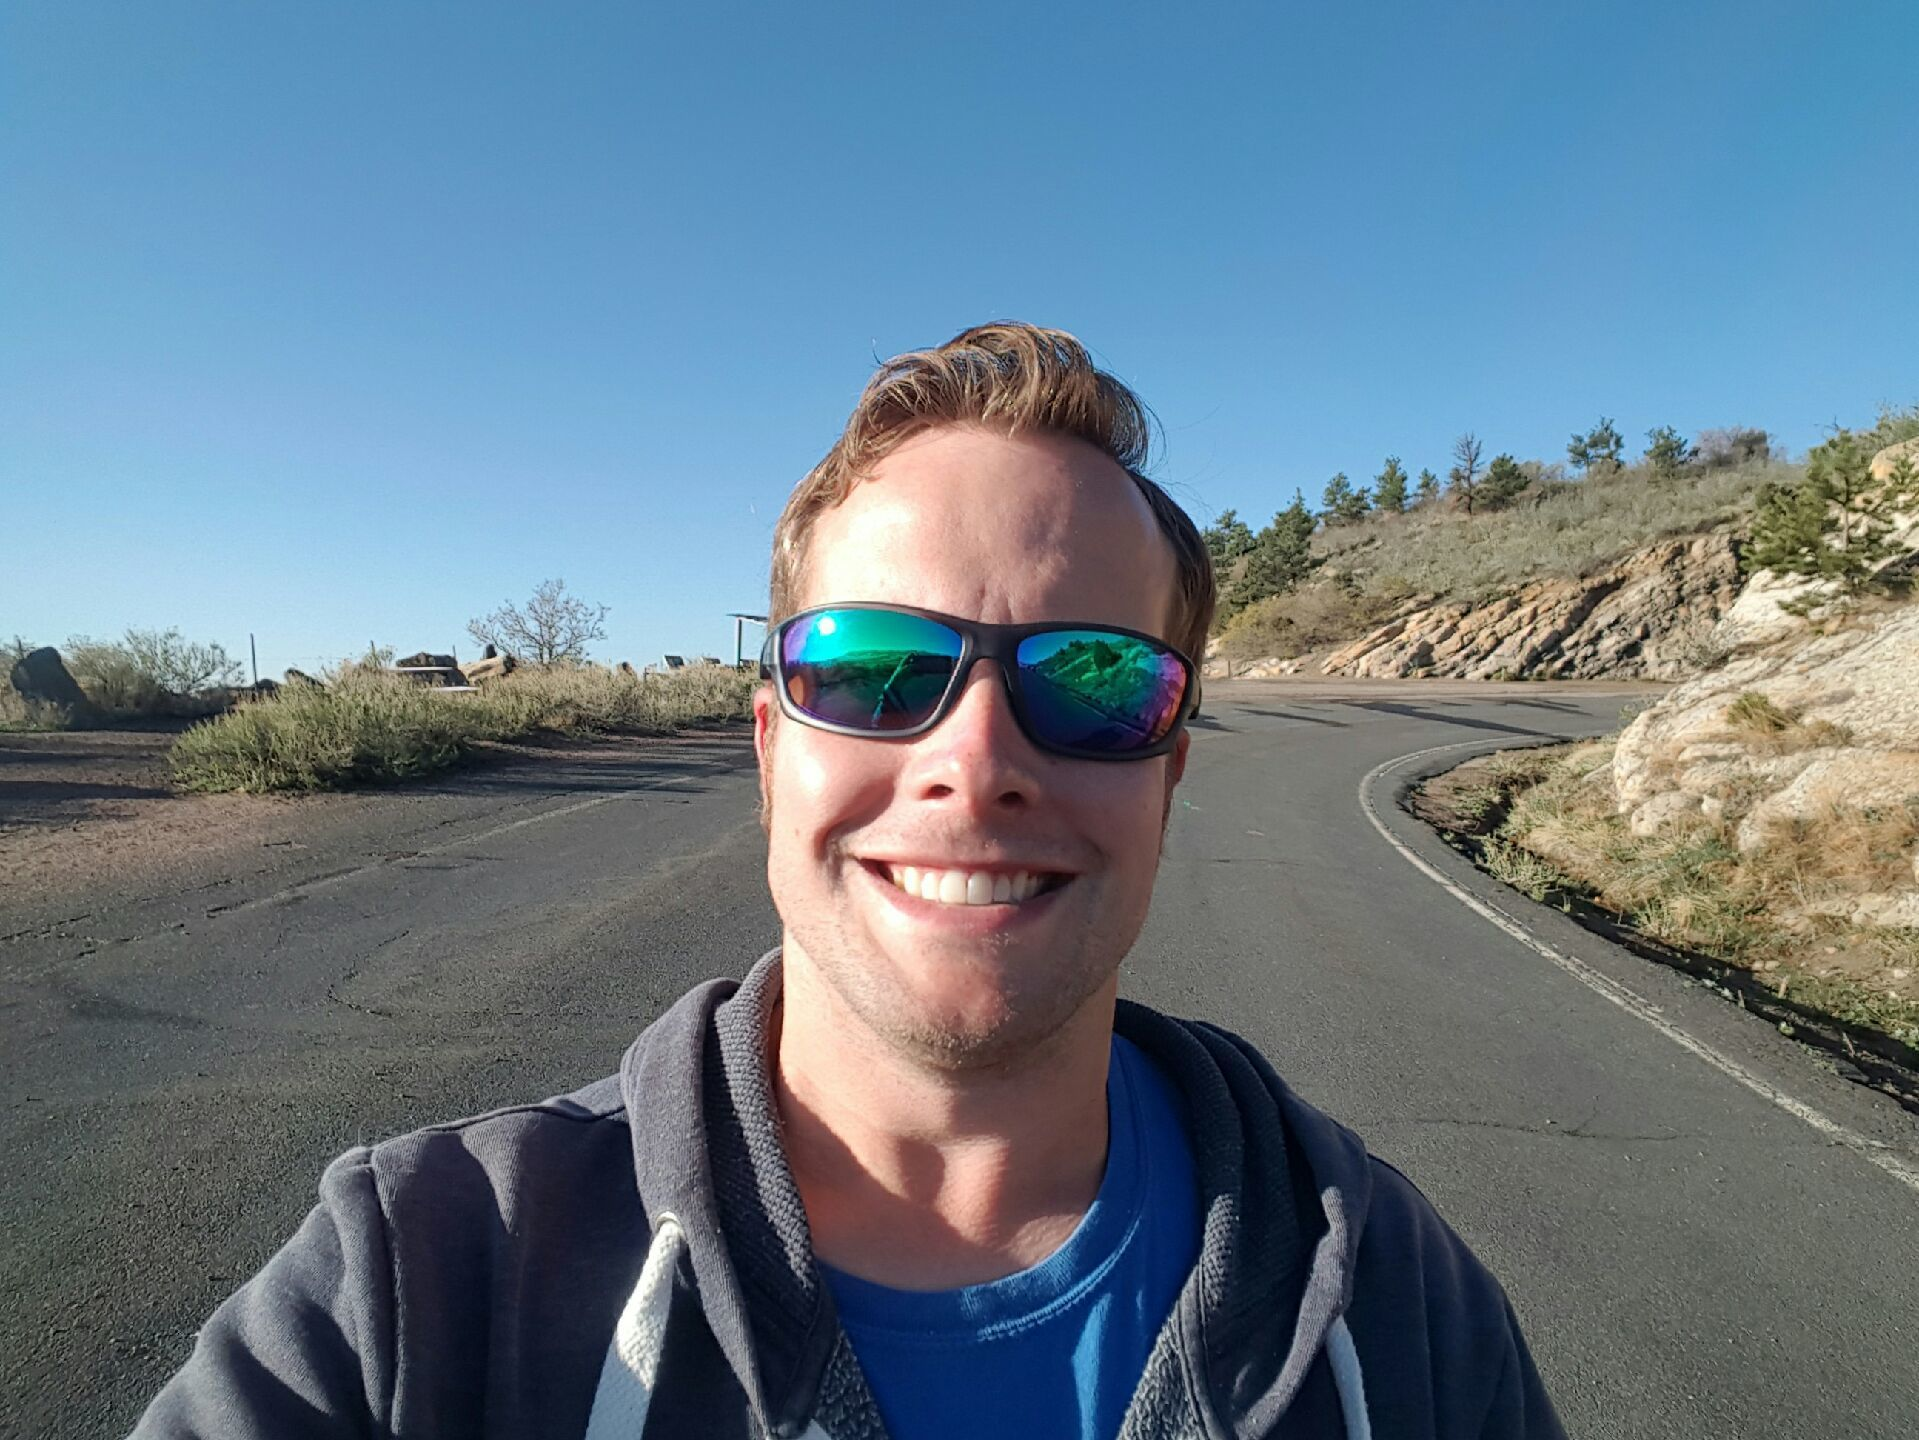 single gay men in custer county Gay dating apps are plentiful, but which are the best here's a roundup of the  most useful apps for lgbtq people looking for love.